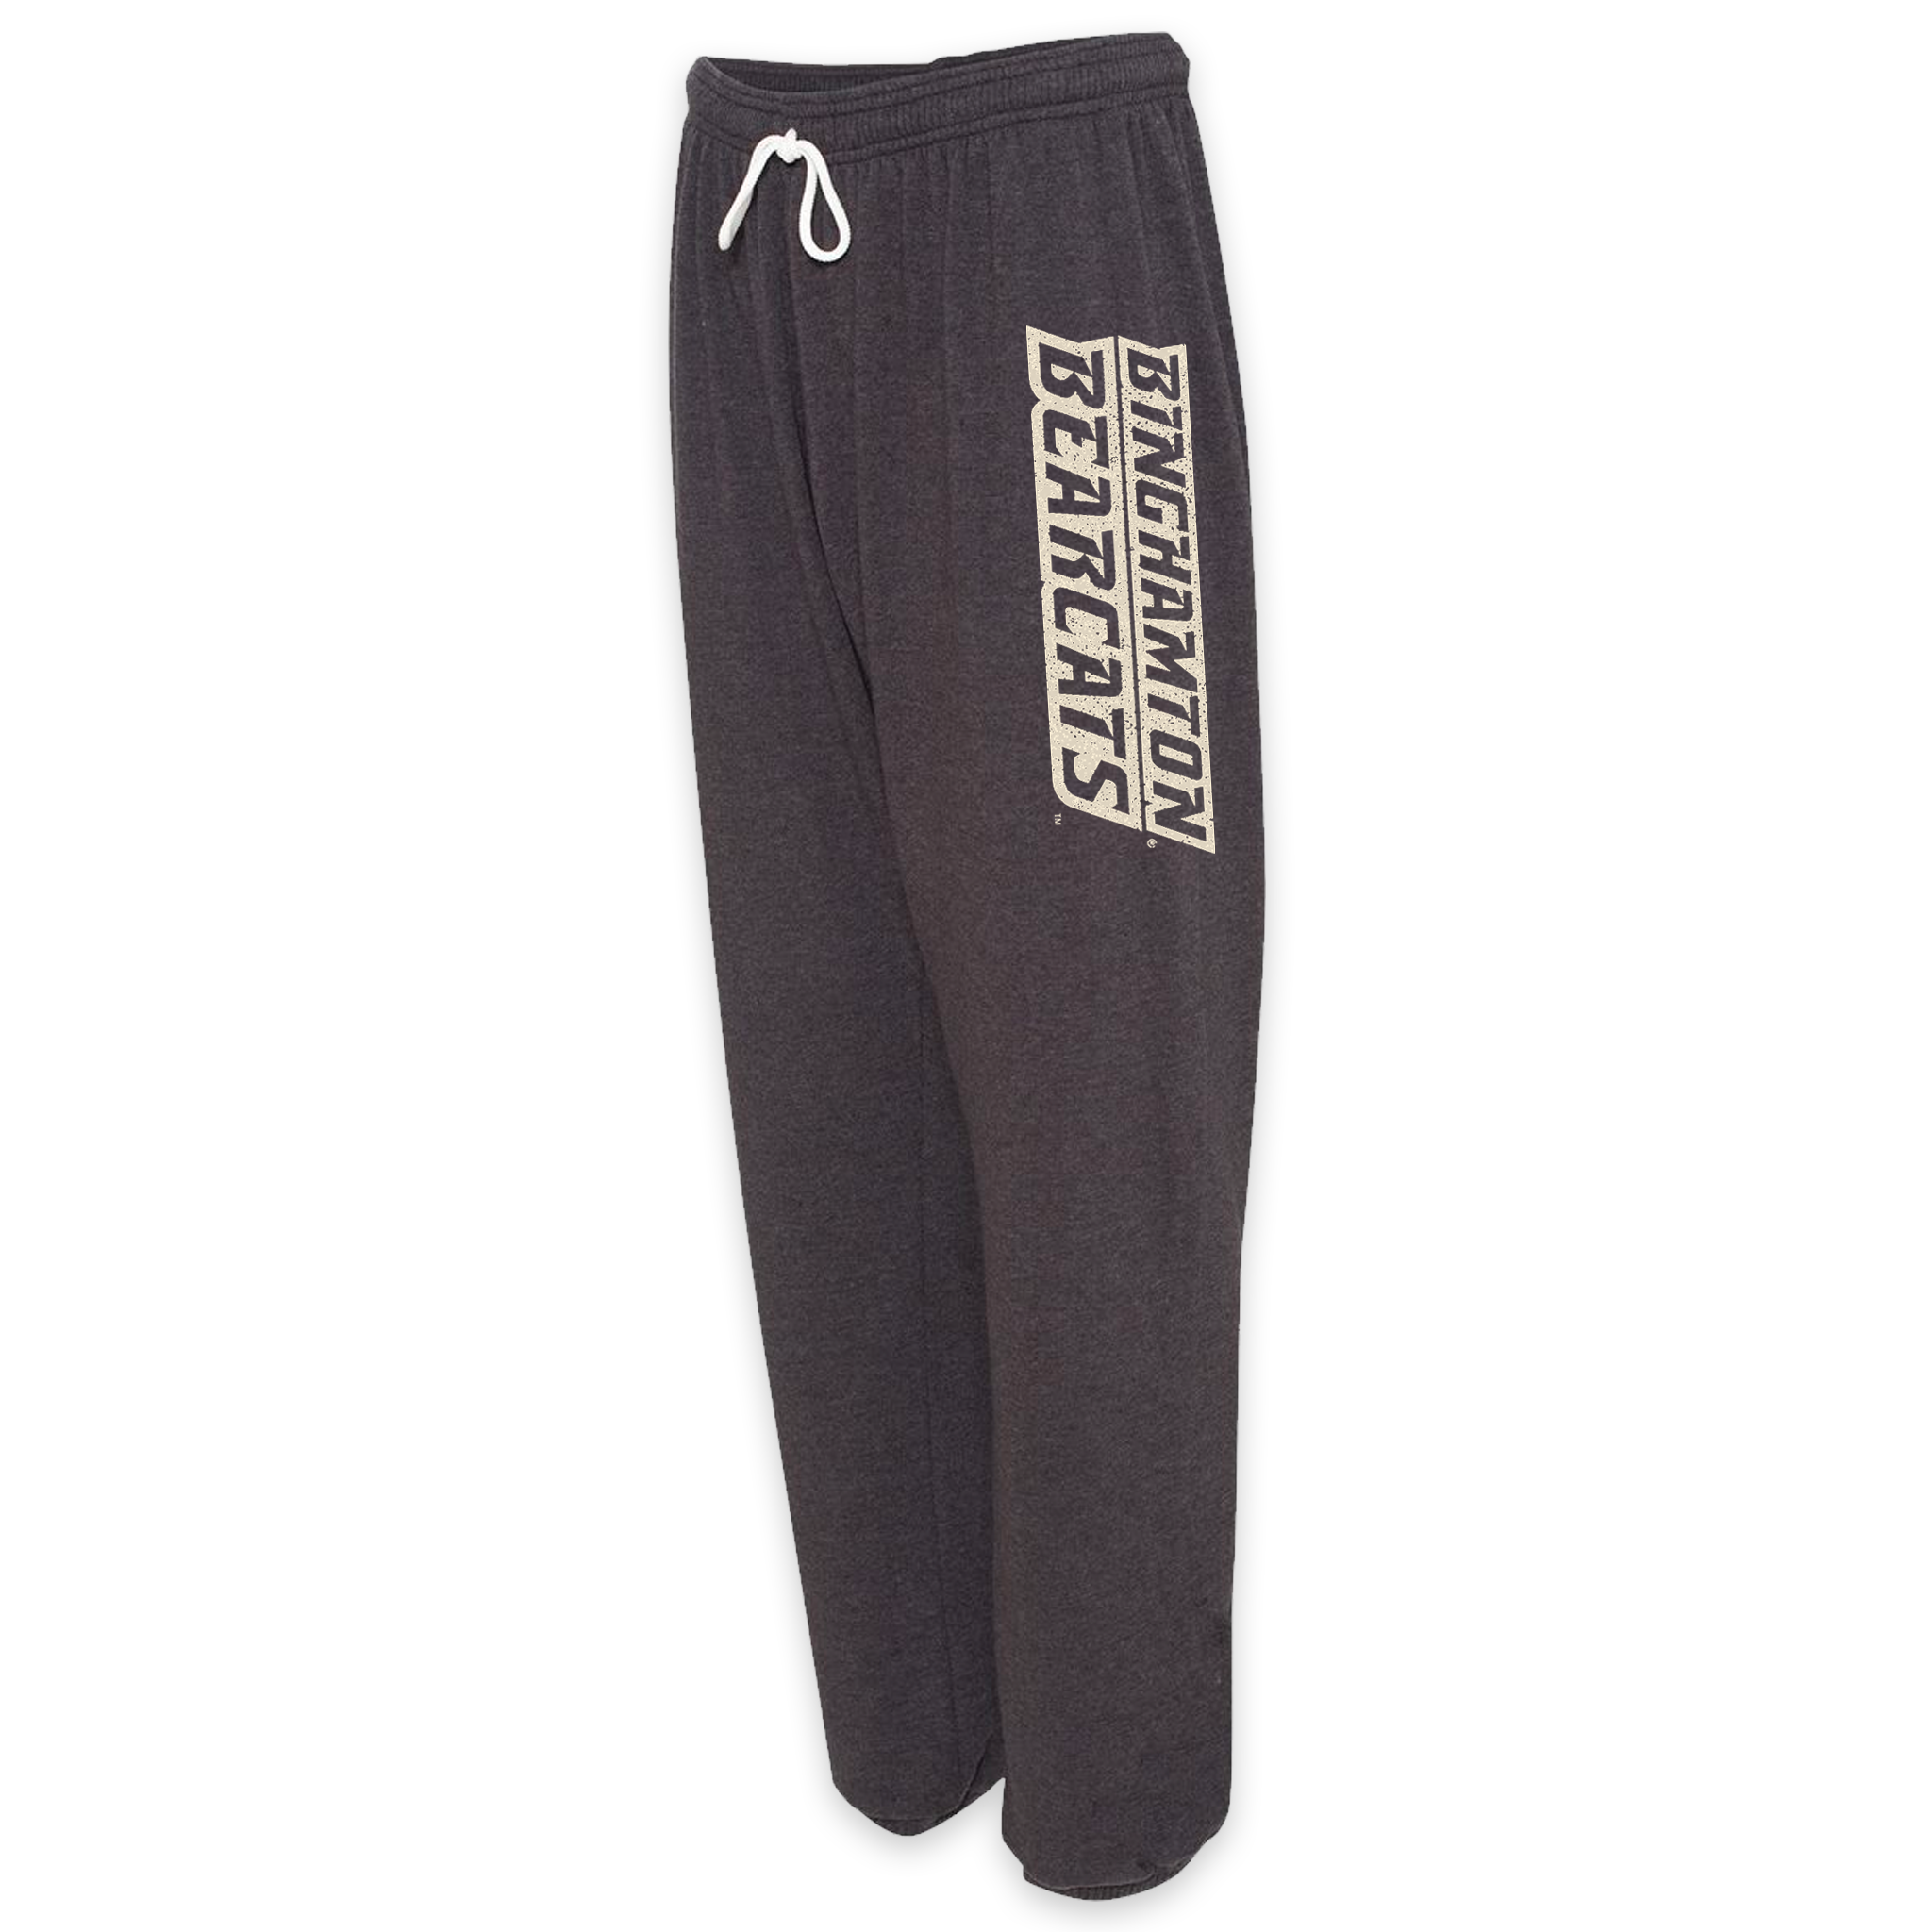 Bearcat Sweatpants!